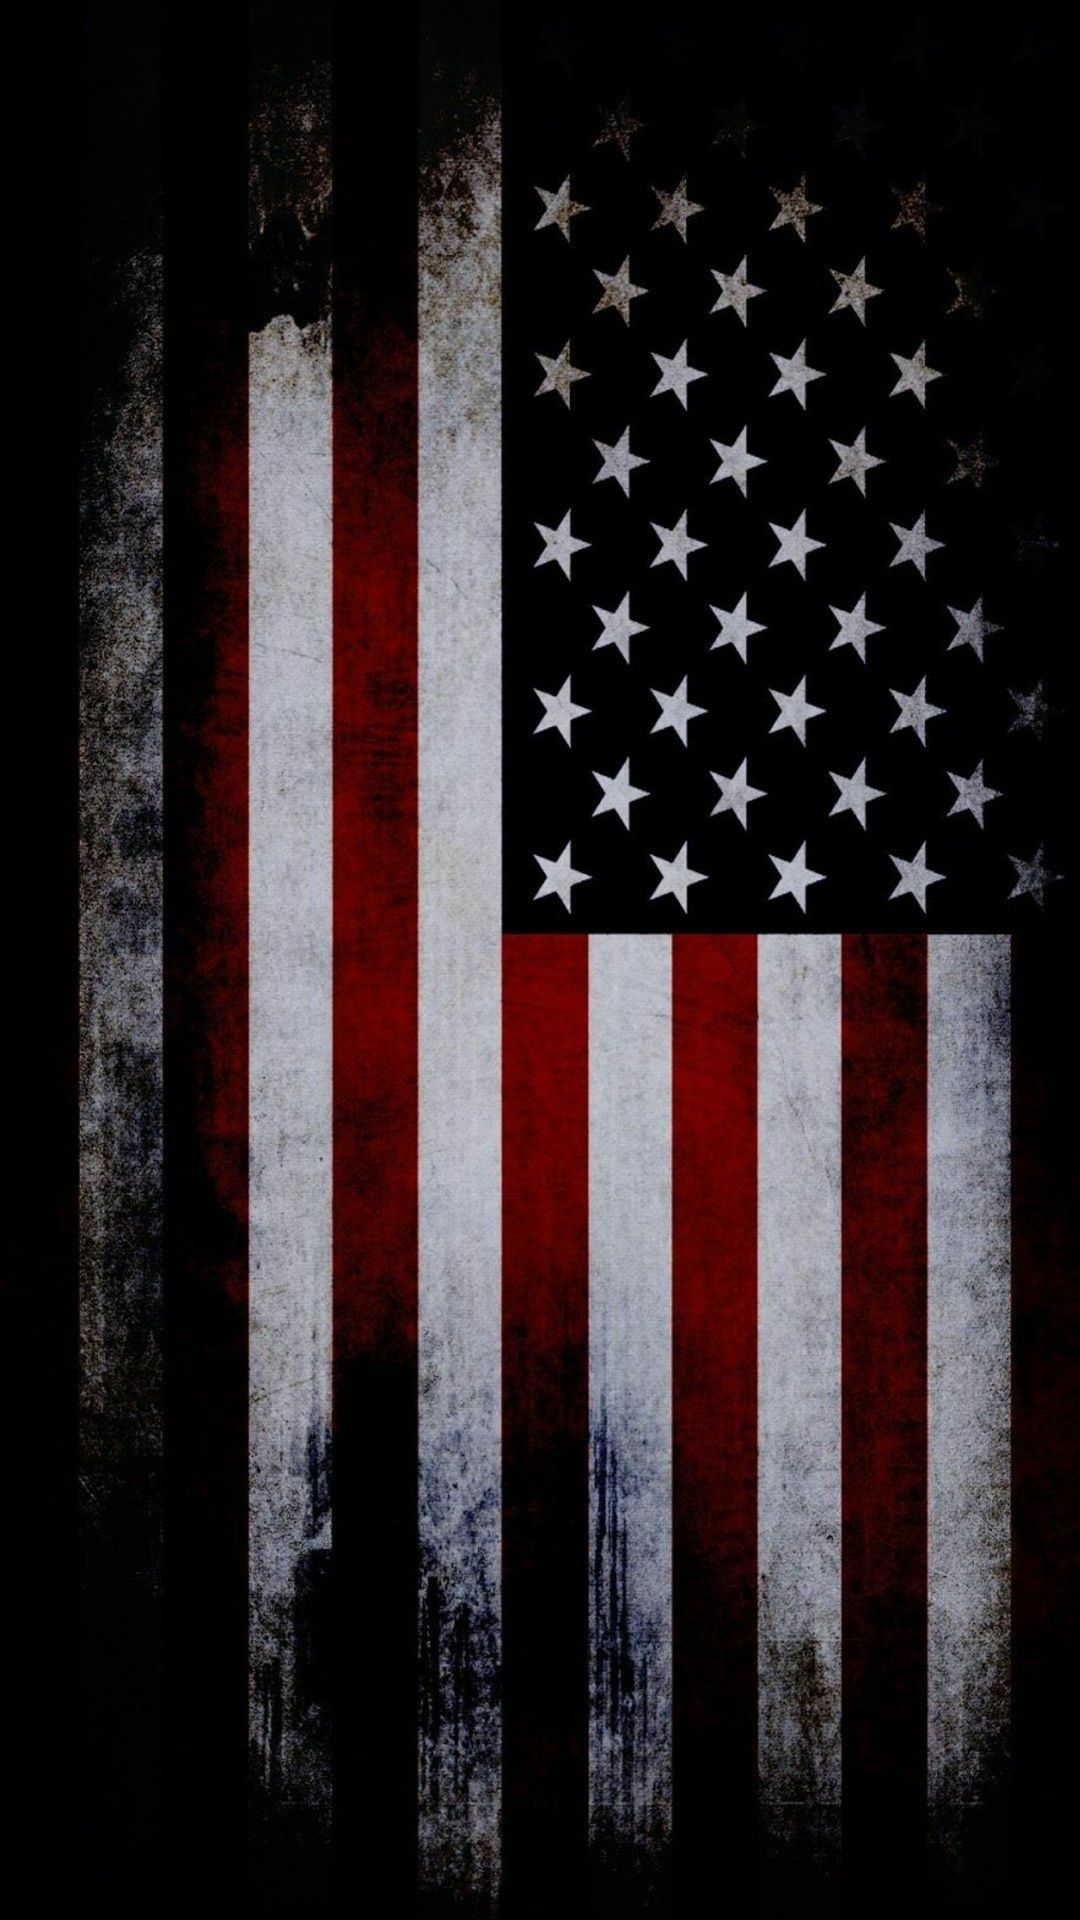 red, white & blue American flag wallpaper iphone